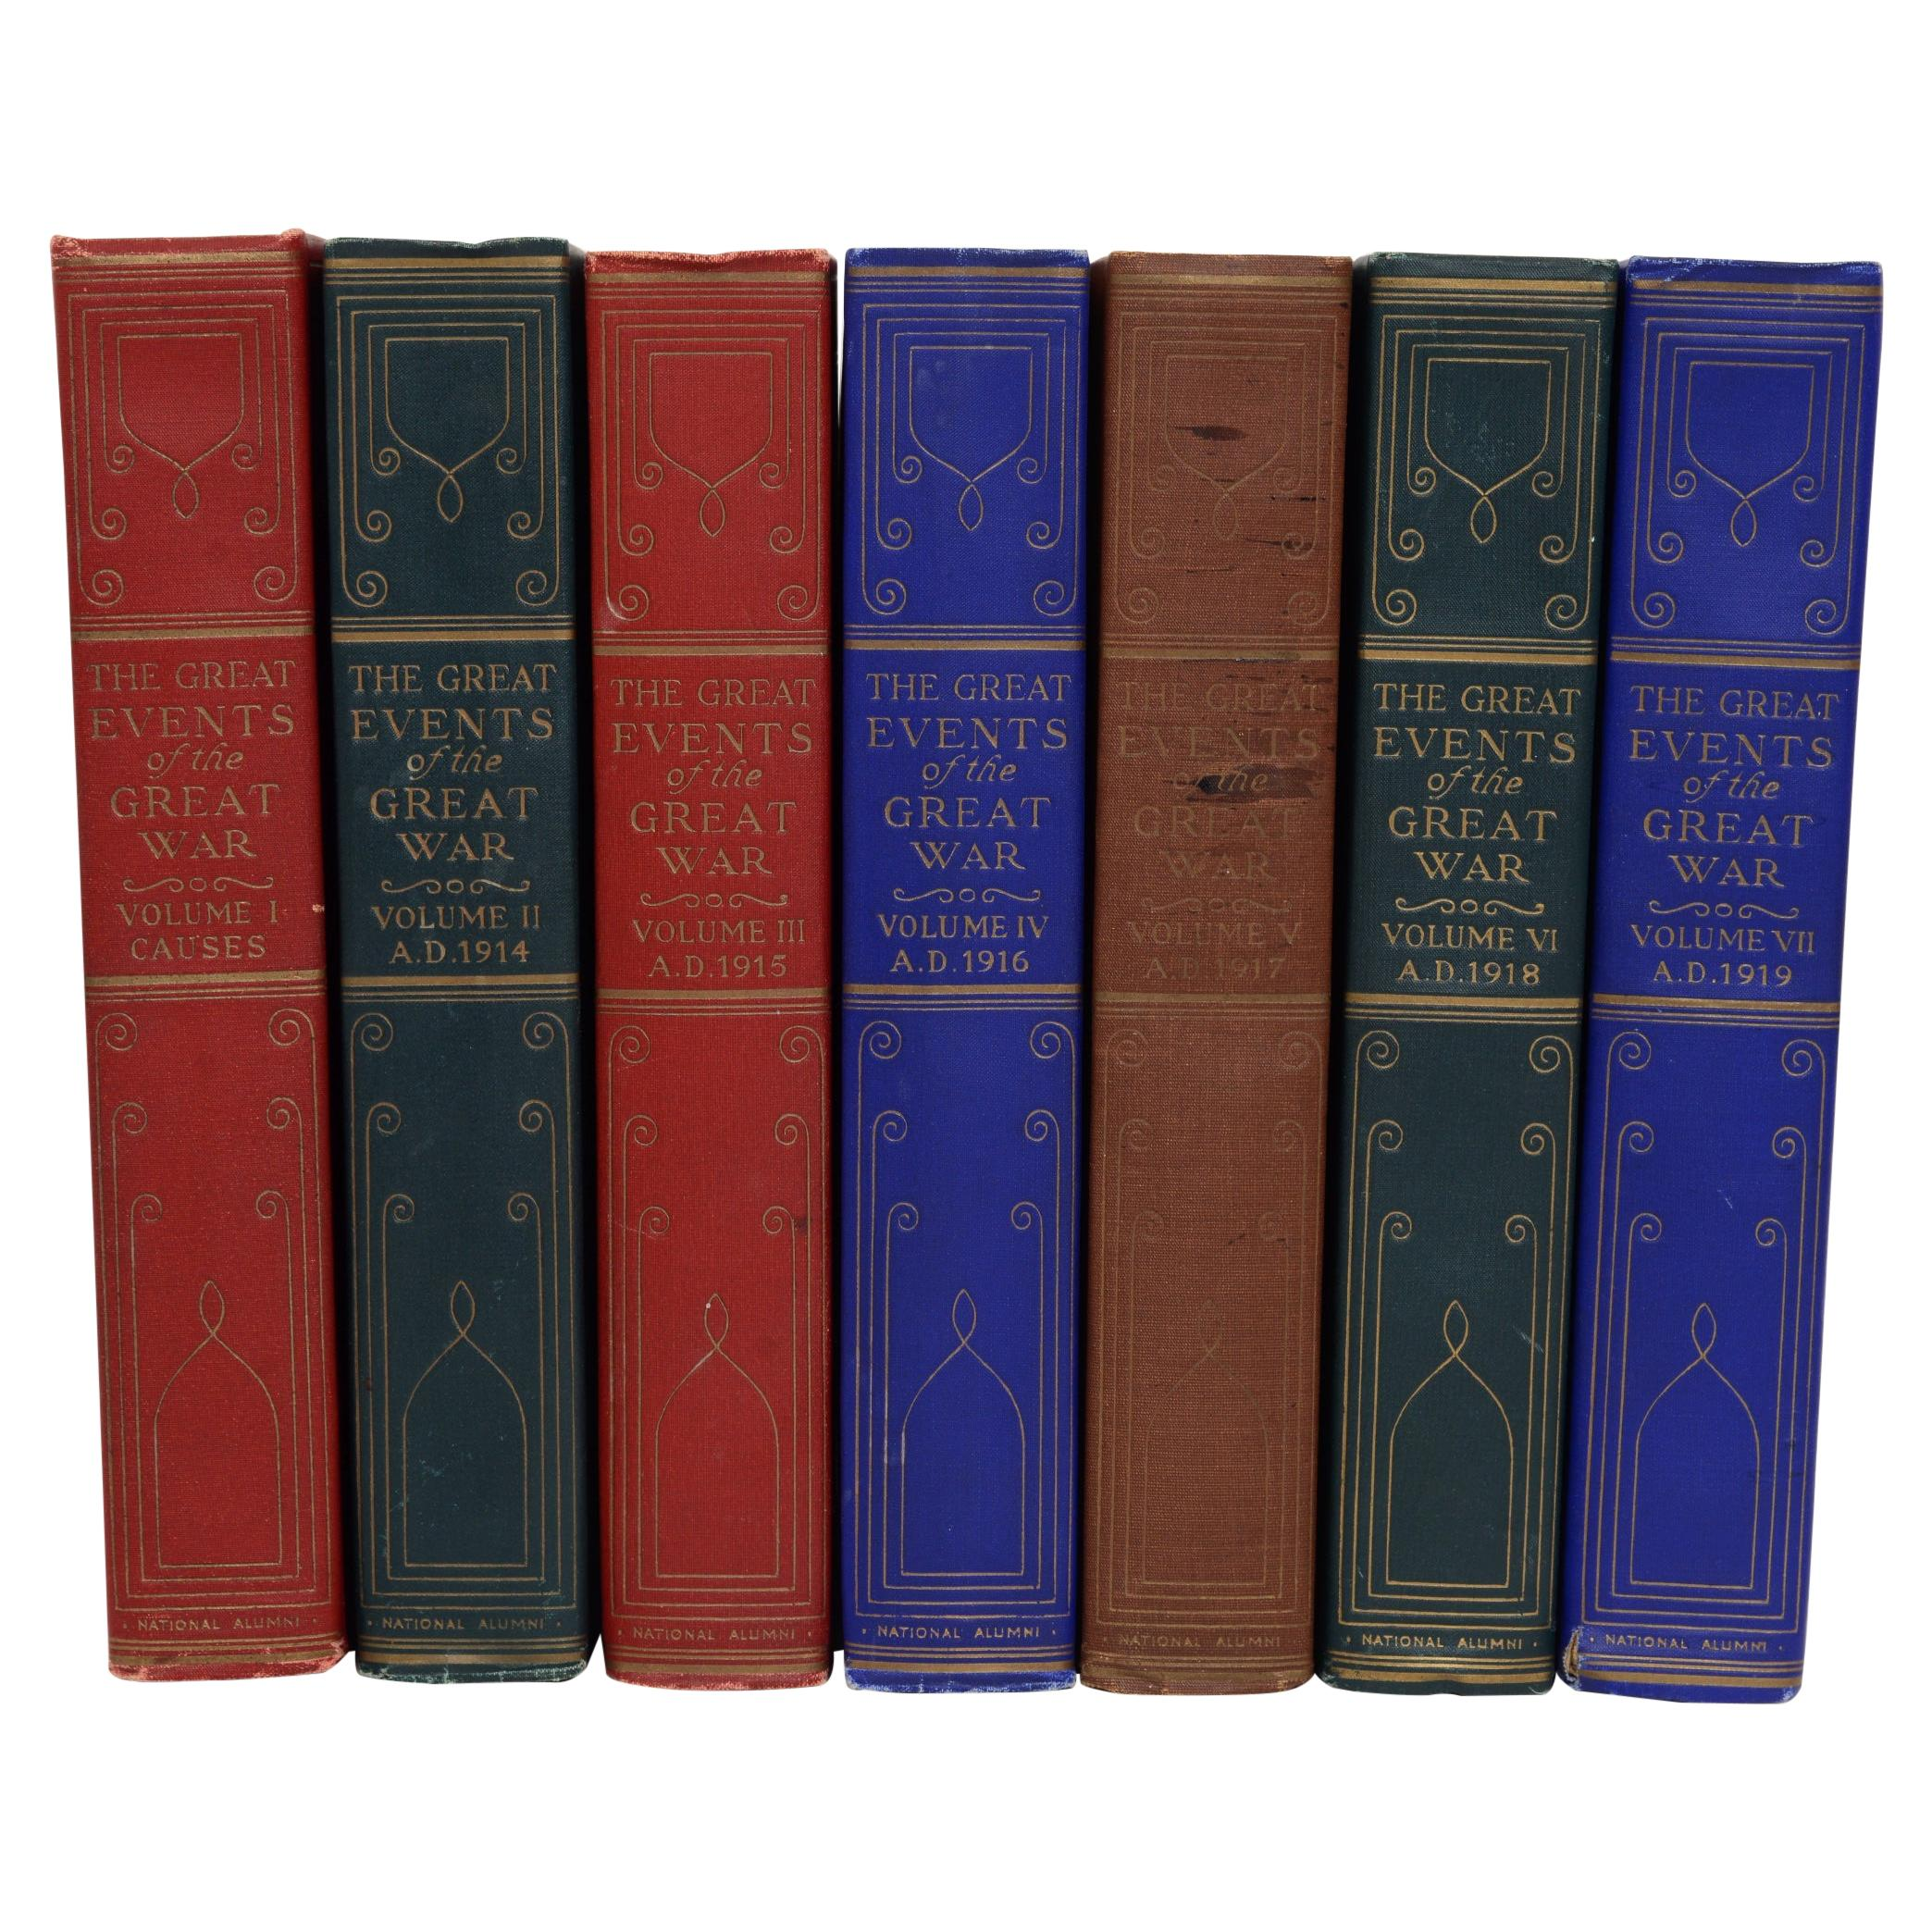 The Great Events of Great War in 7 Volumes Complete, First Edition